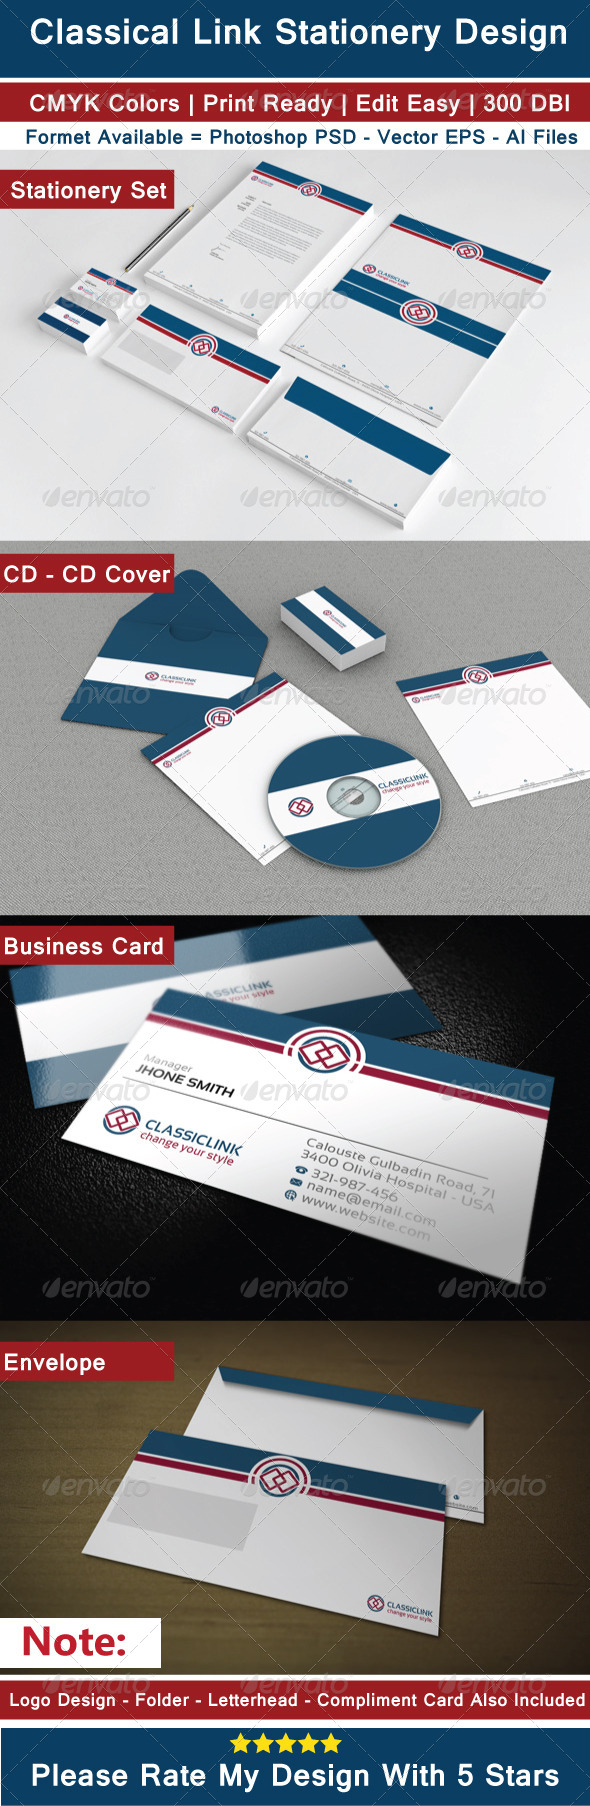 GraphicRiver Clean Classical Stationery Design 6816058